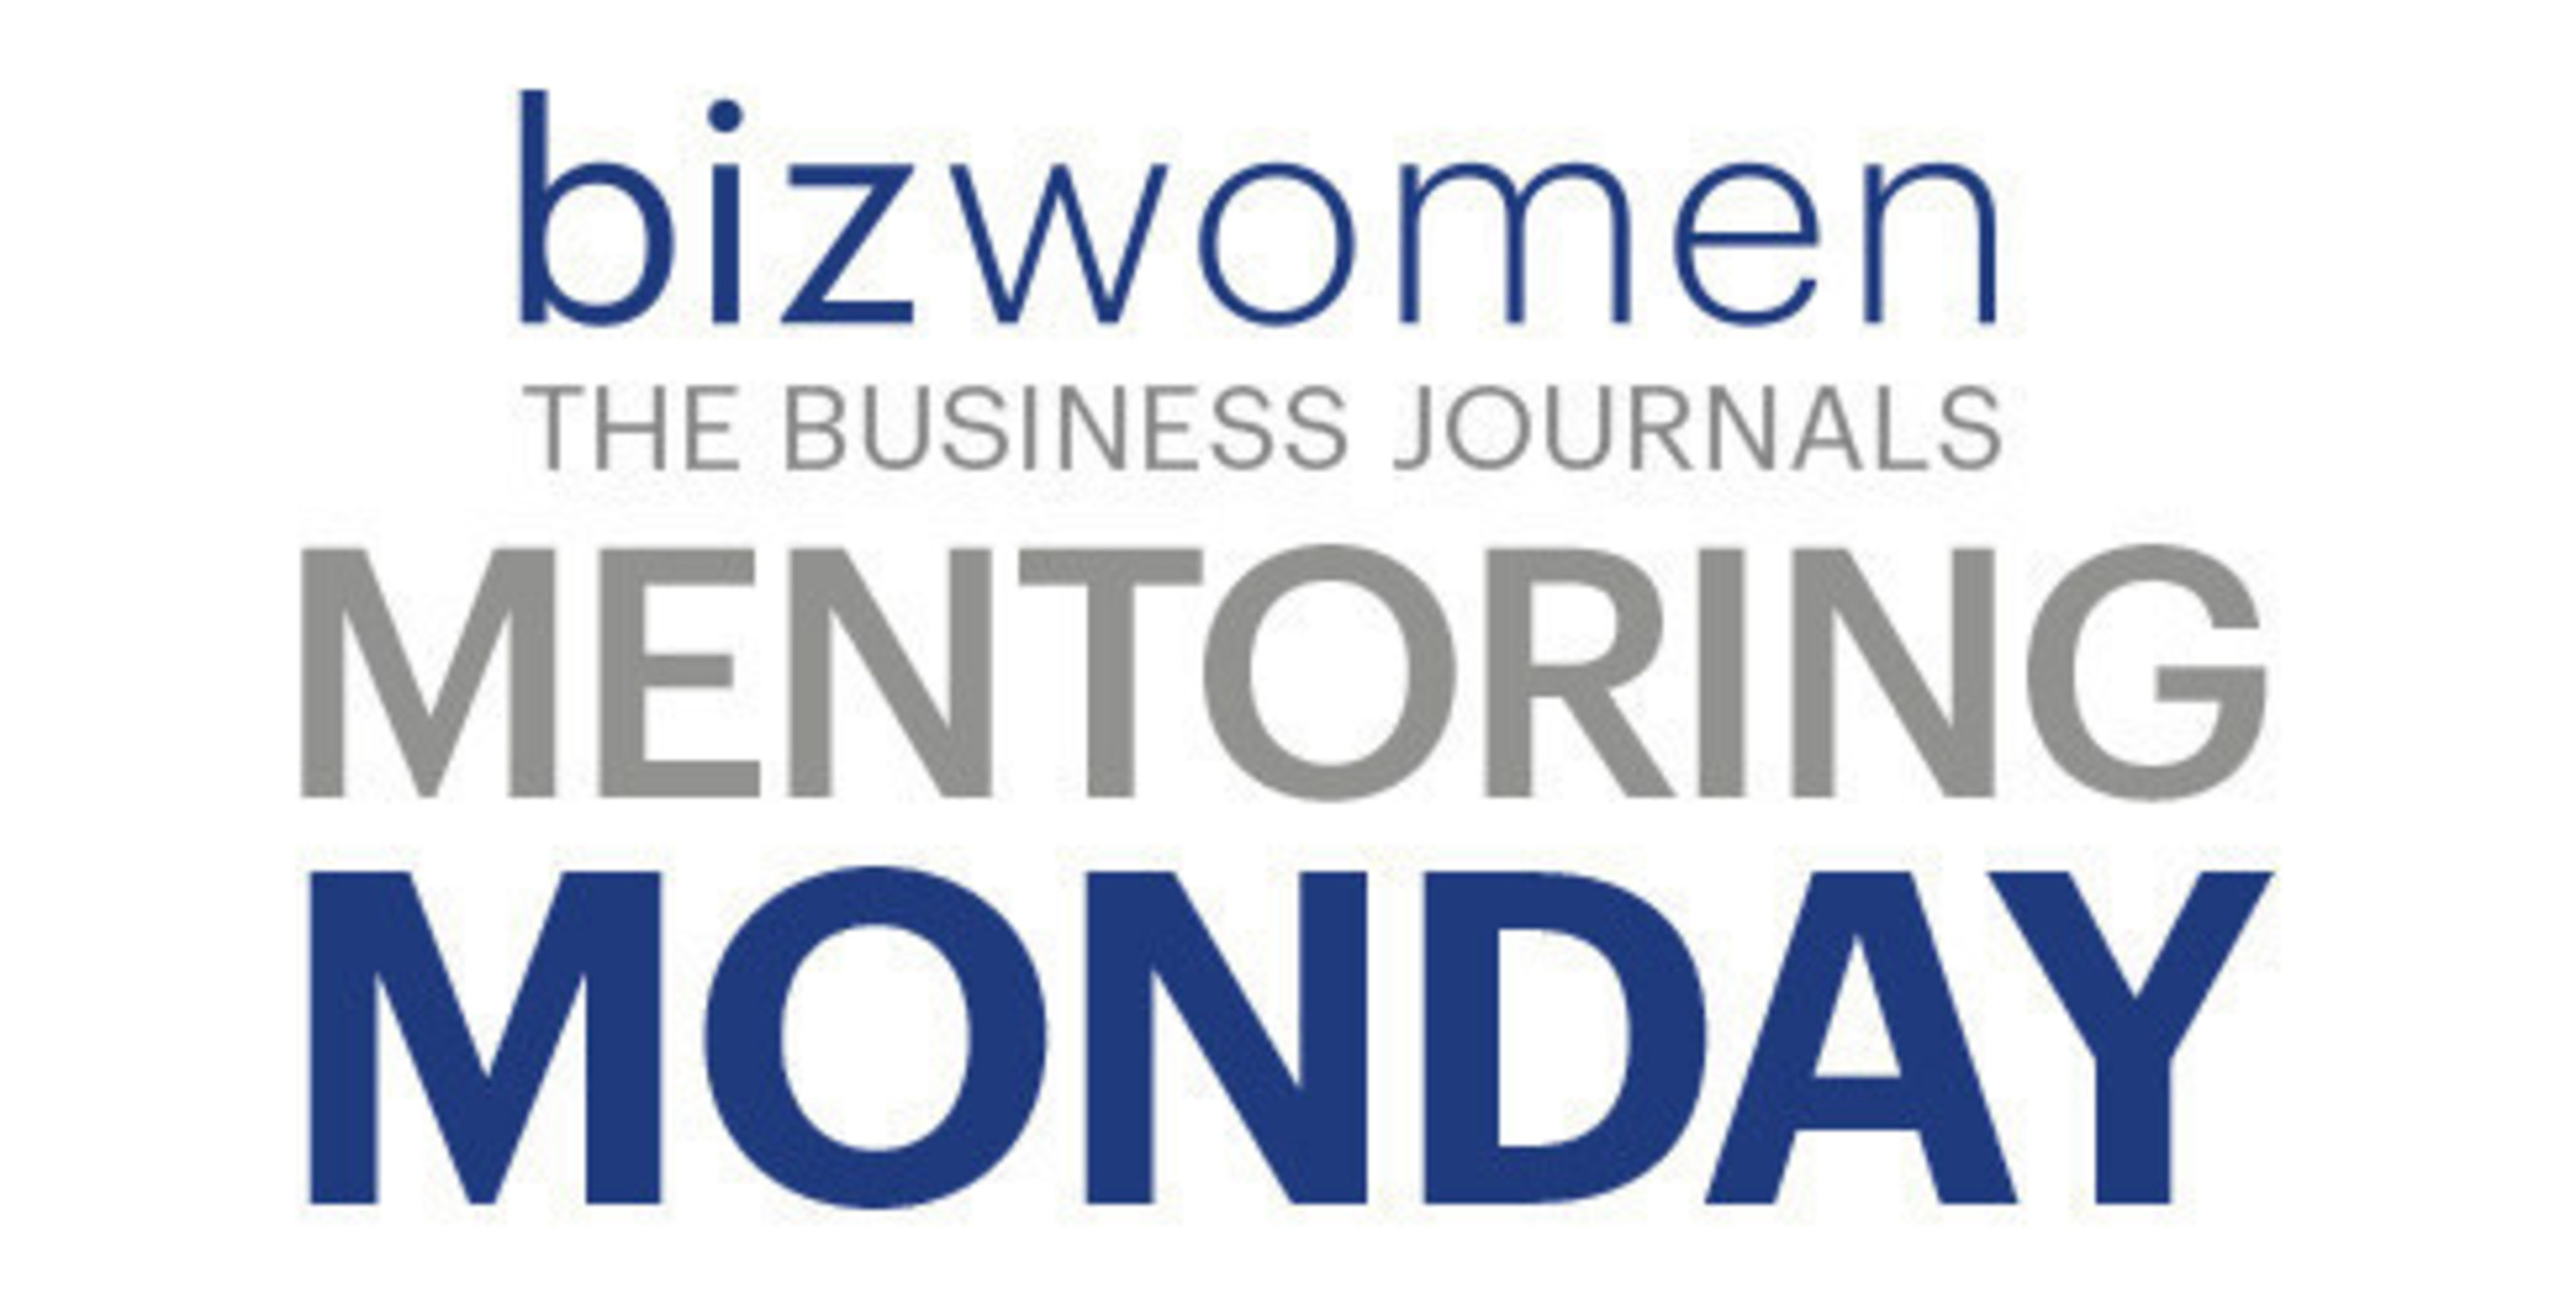 ACBJ's Mentoring Monday will Bring Together More Than 10,000 Women and Top Female CEOs Across the United States